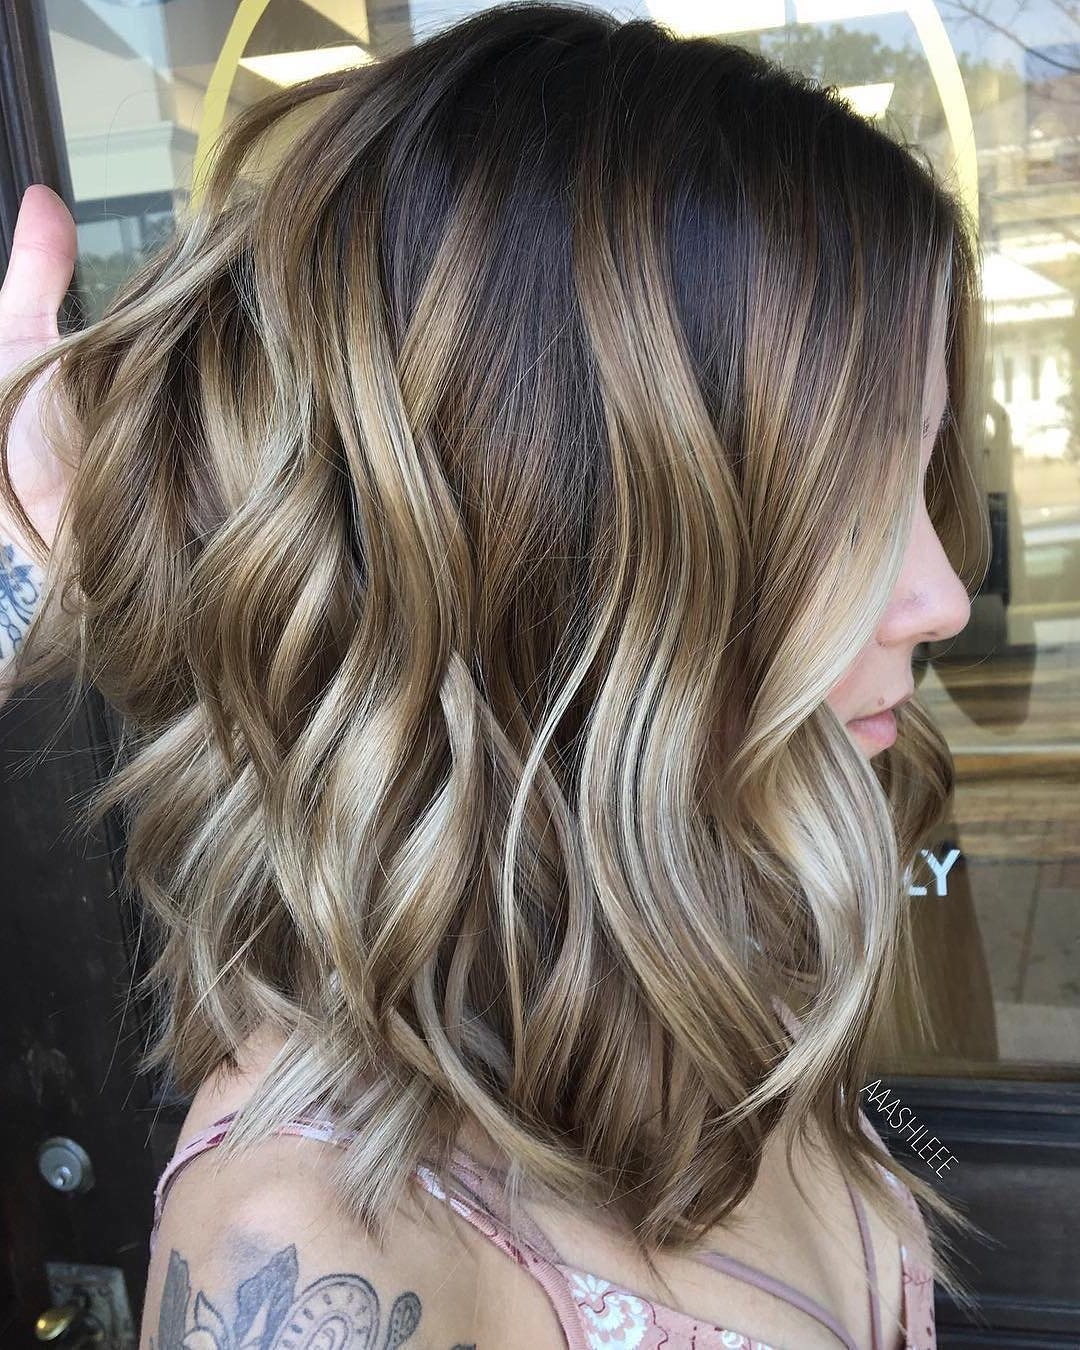 10 Ombre Balayage Hairstyles For Medium Length Hair, Hair Color 2018 For Latest Tousled Shoulder Length Ombre Blonde Hairstyles (View 1 of 20)